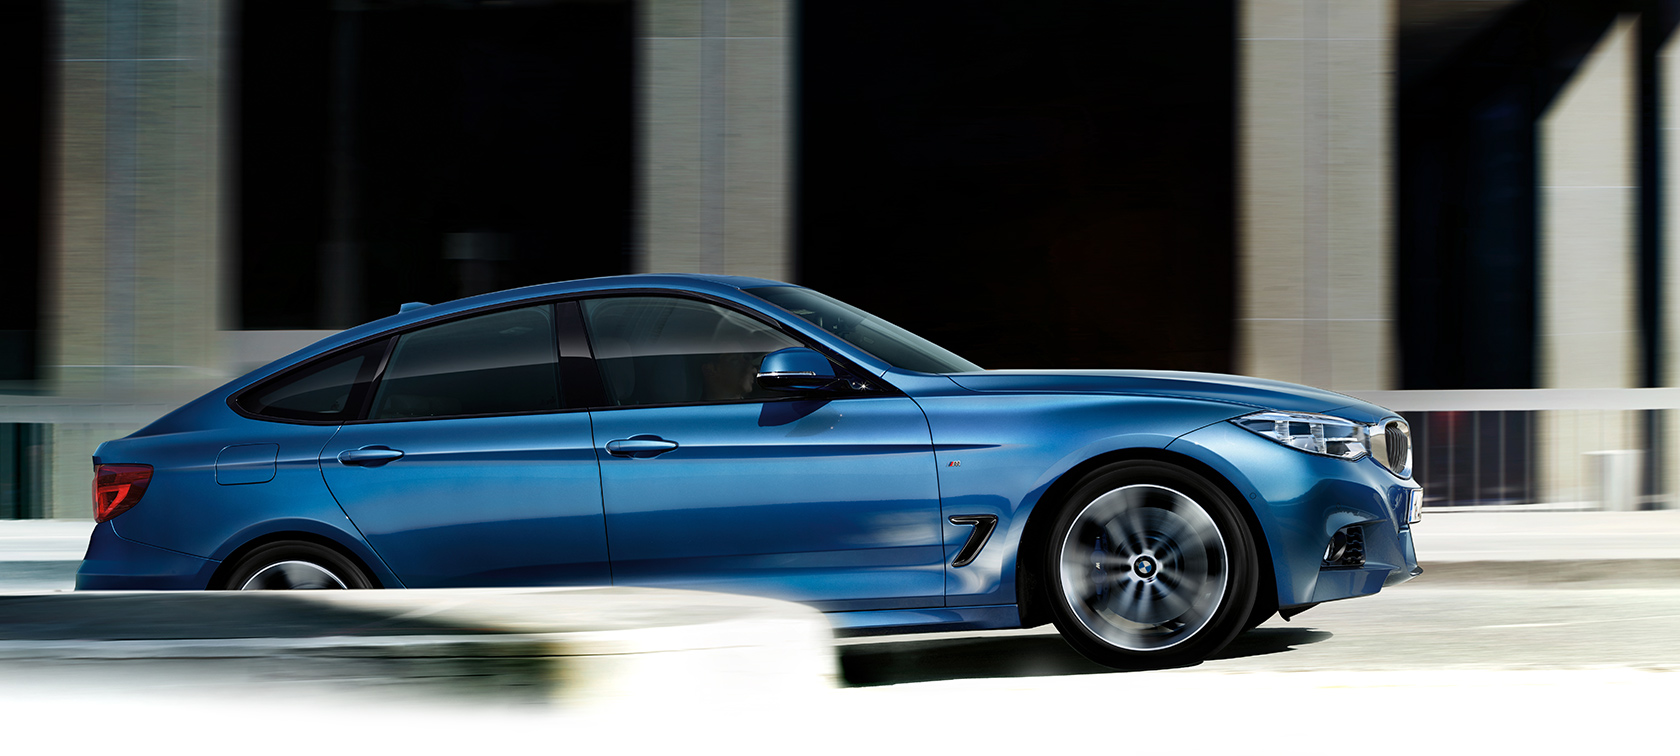 The design of the BMW 3 Series Gran Turismo